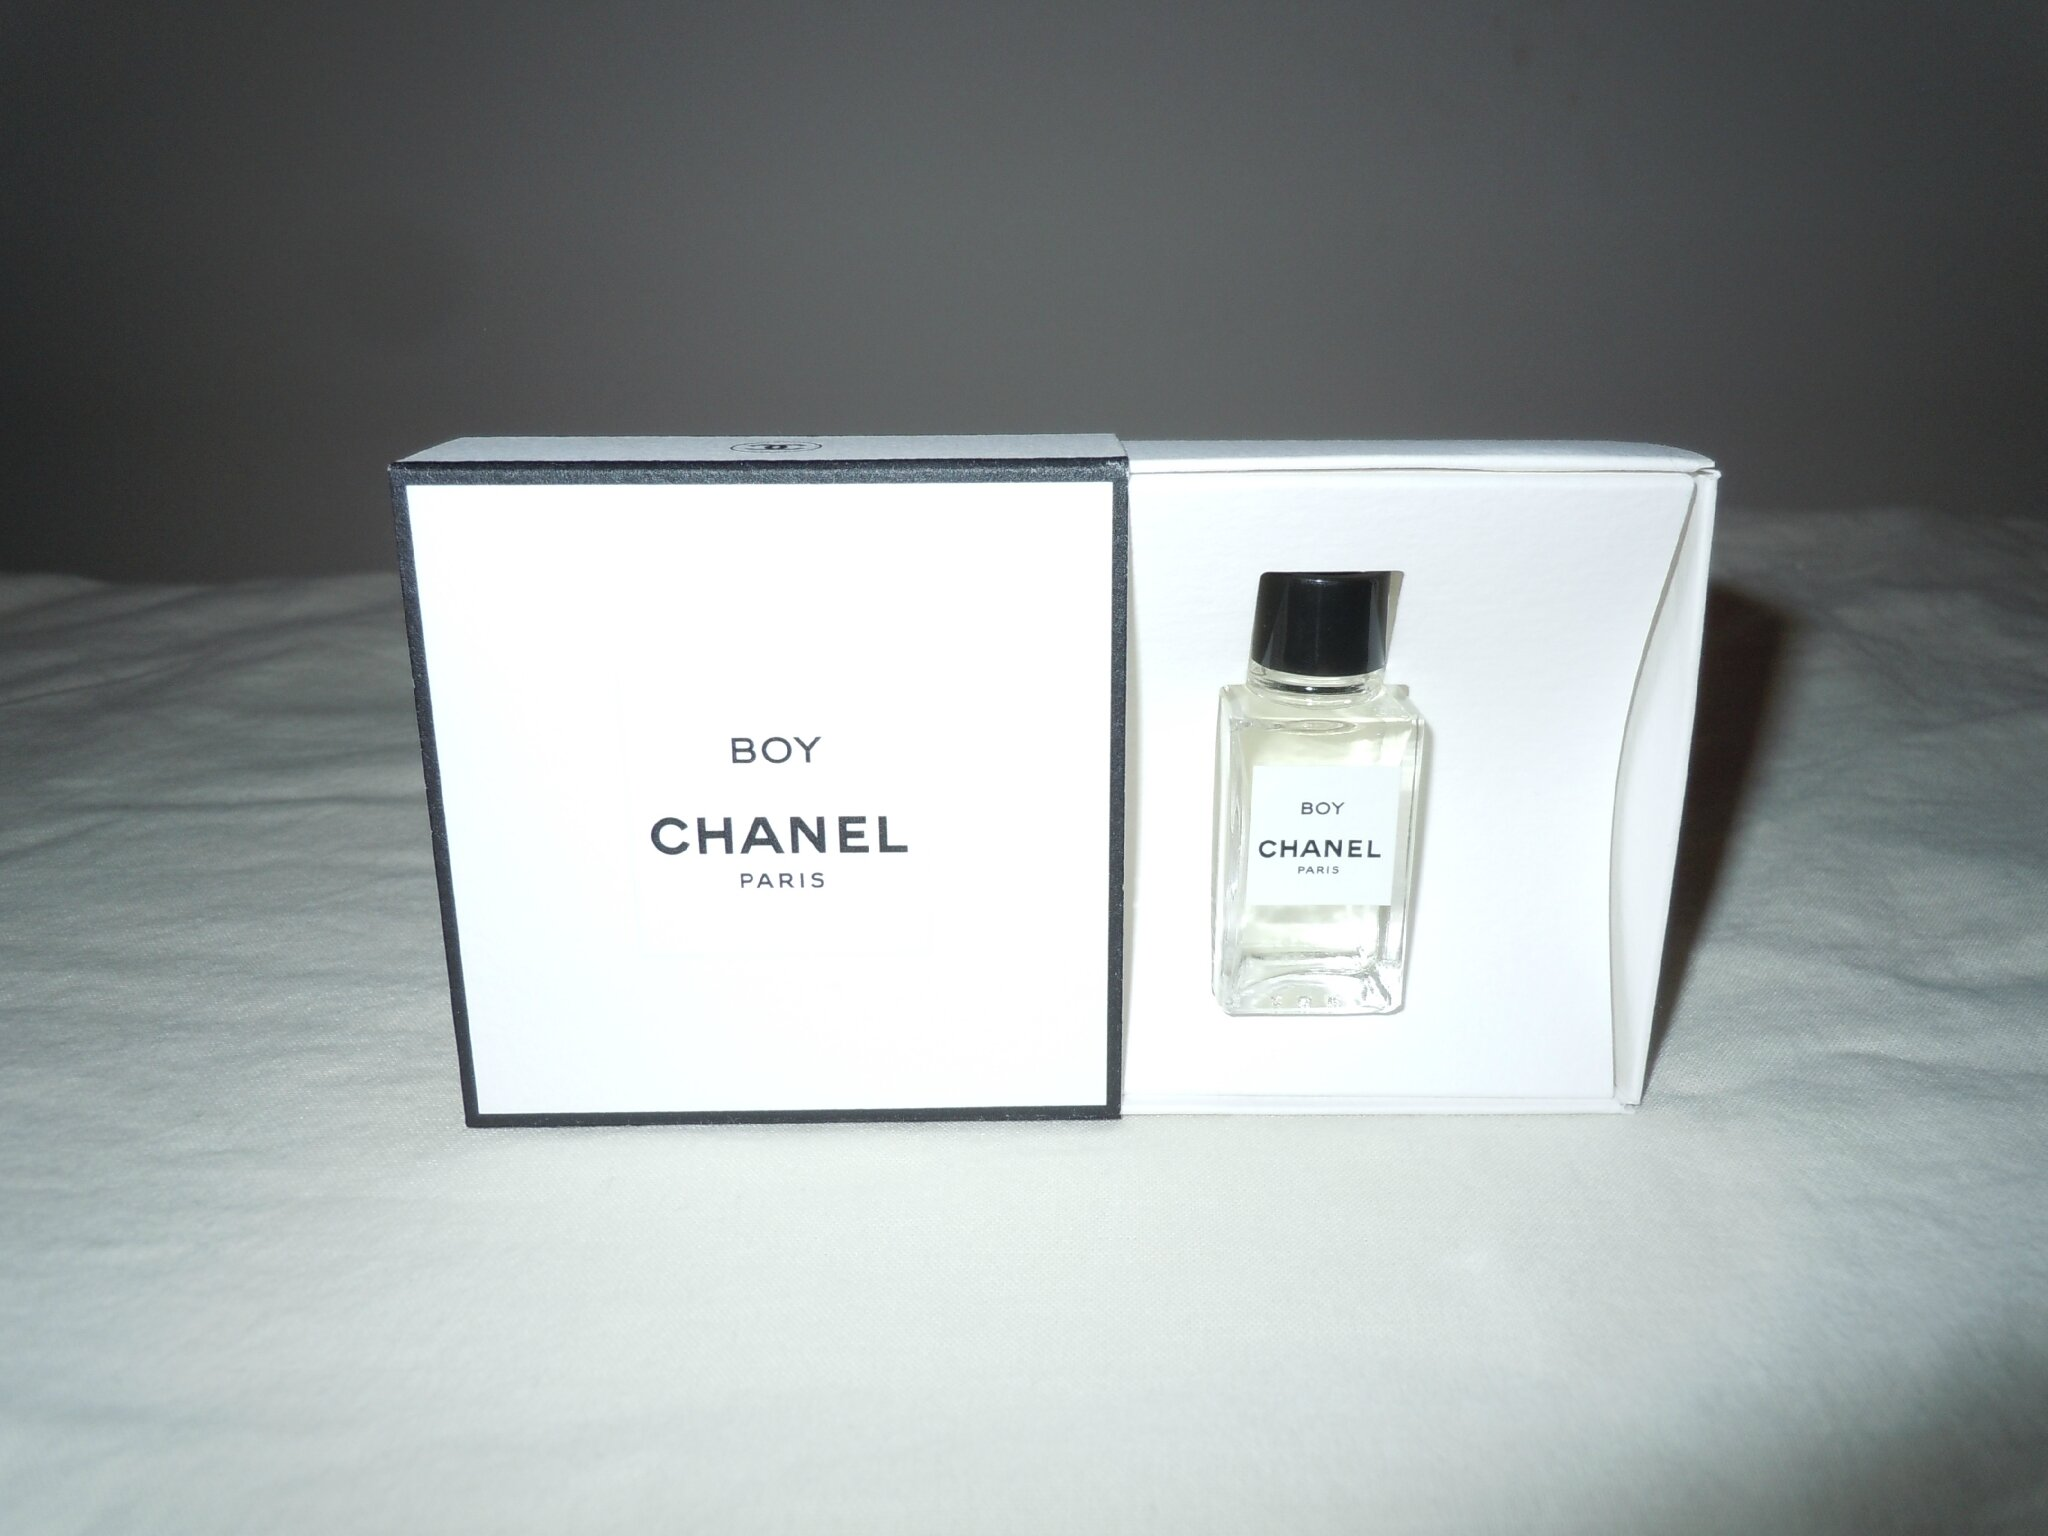 CHANEL-BOY-LESEXCLUSIFS